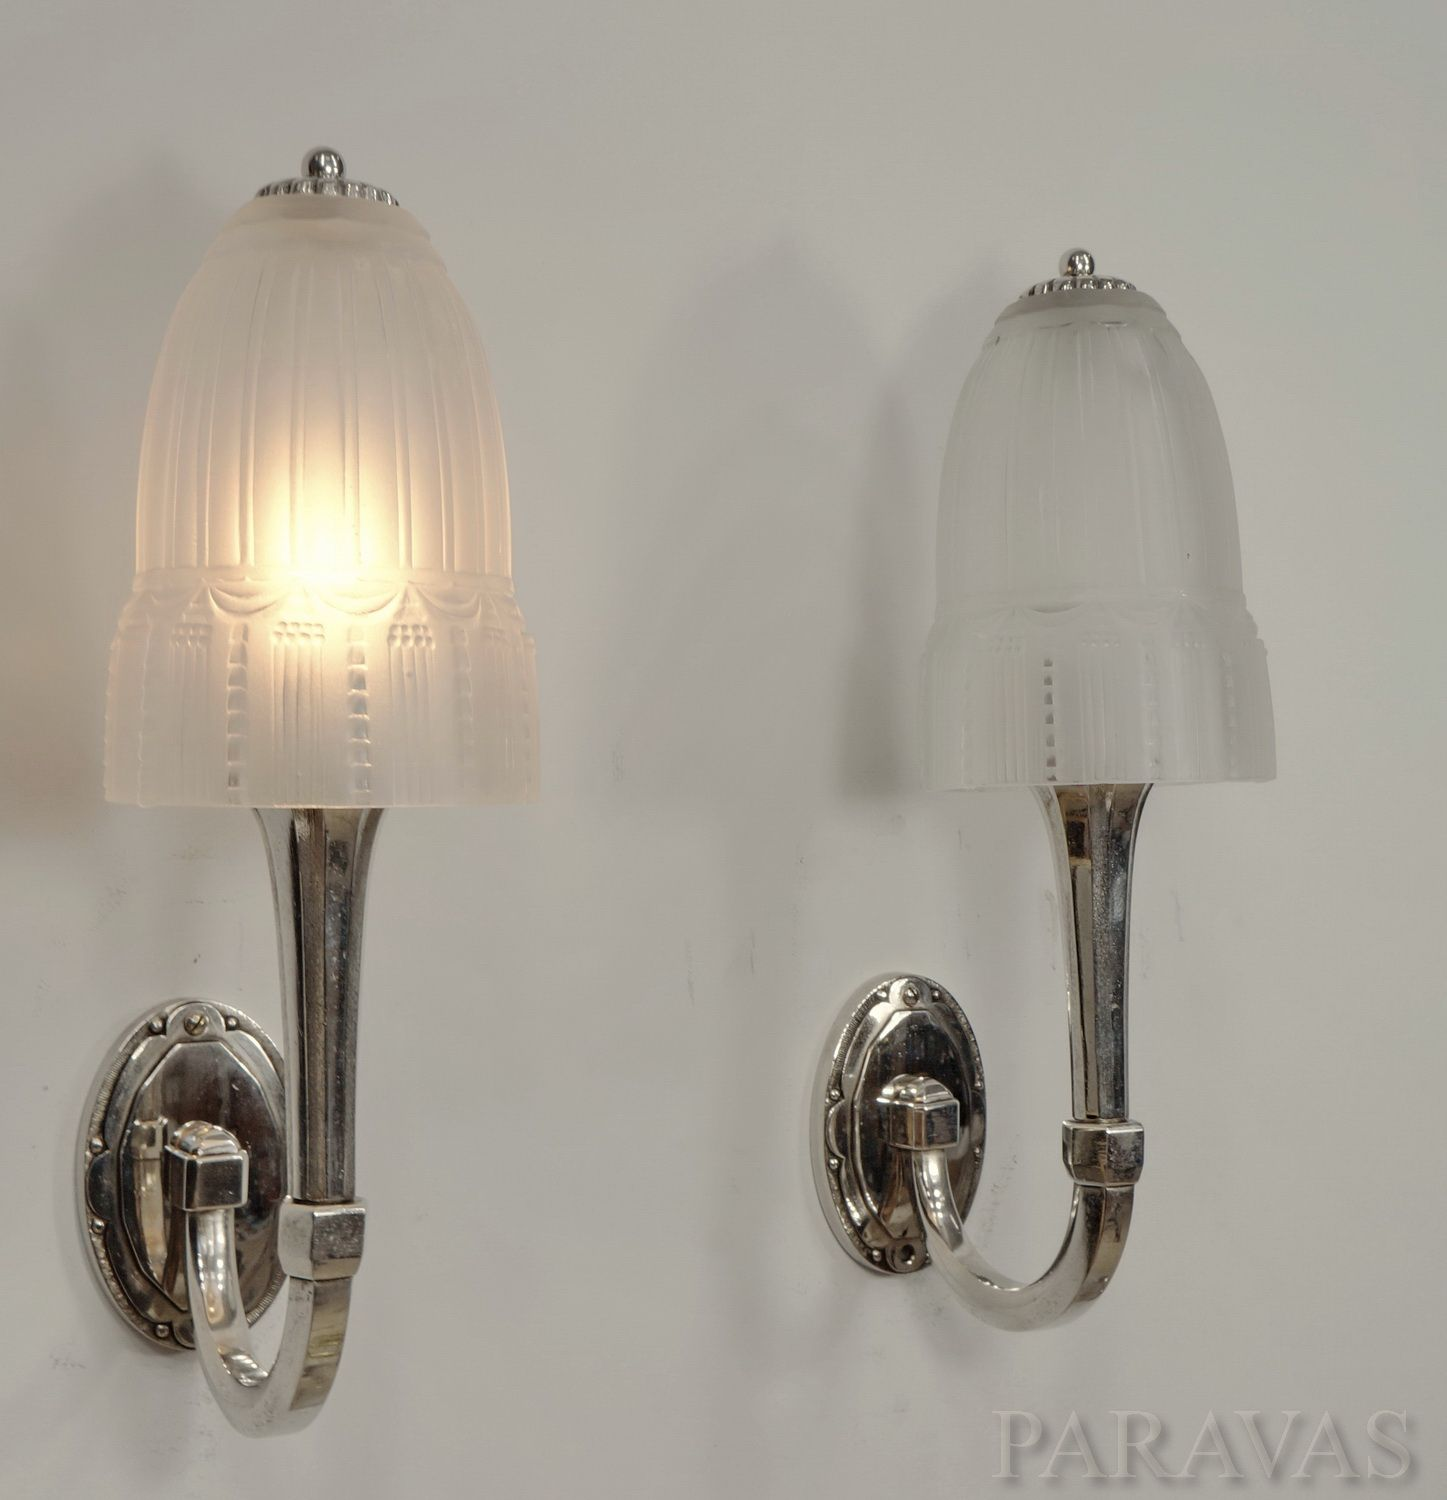 French art deco wall sconces by J Codure Shades by Muller freres